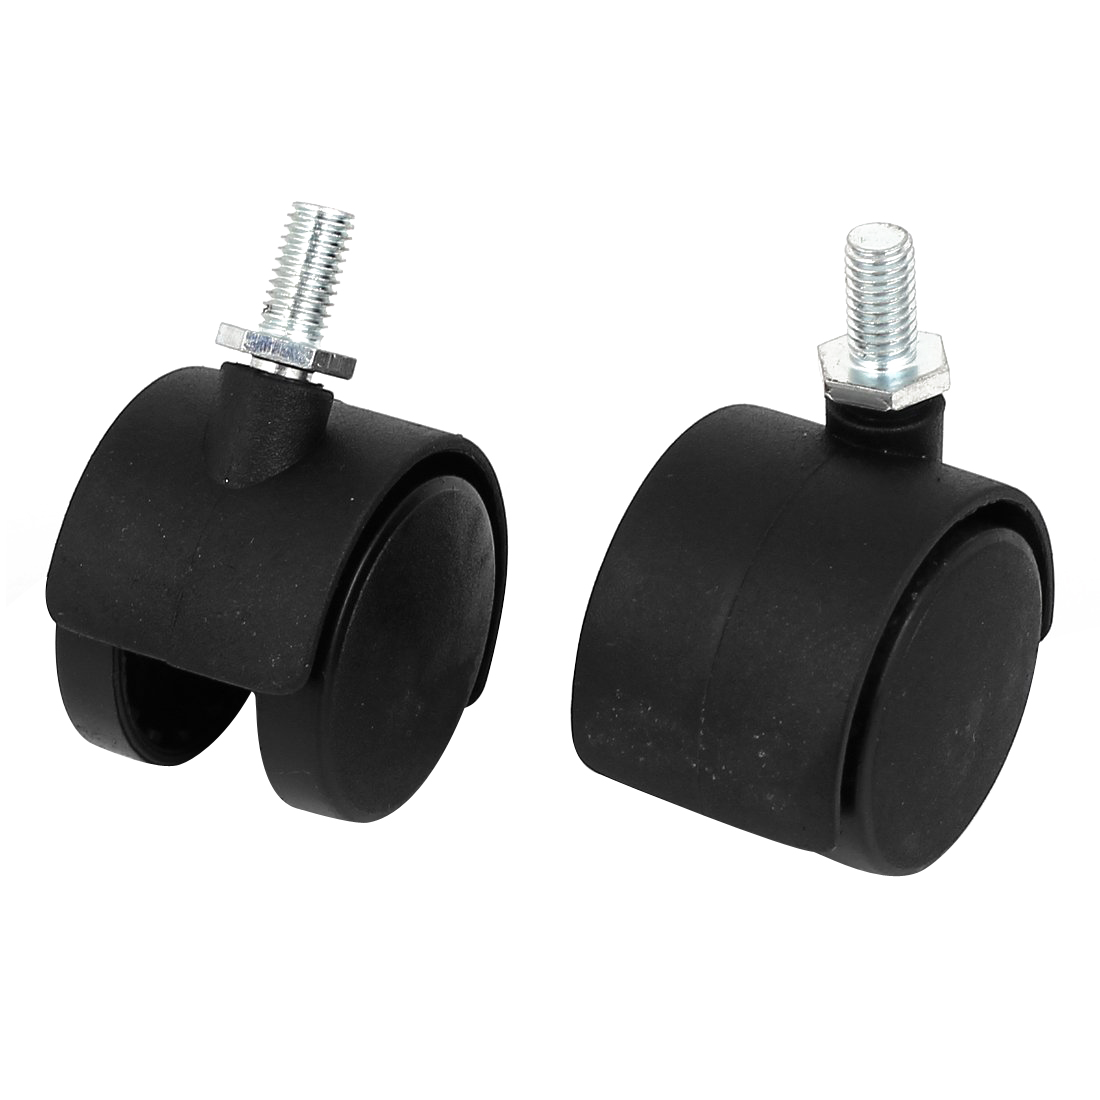 8mm Threaded Stem 1.5 Inch Dia Wheel Chair Swivel Caster 2 Pcs Black abs case with cooling fan heatsink removable top cover